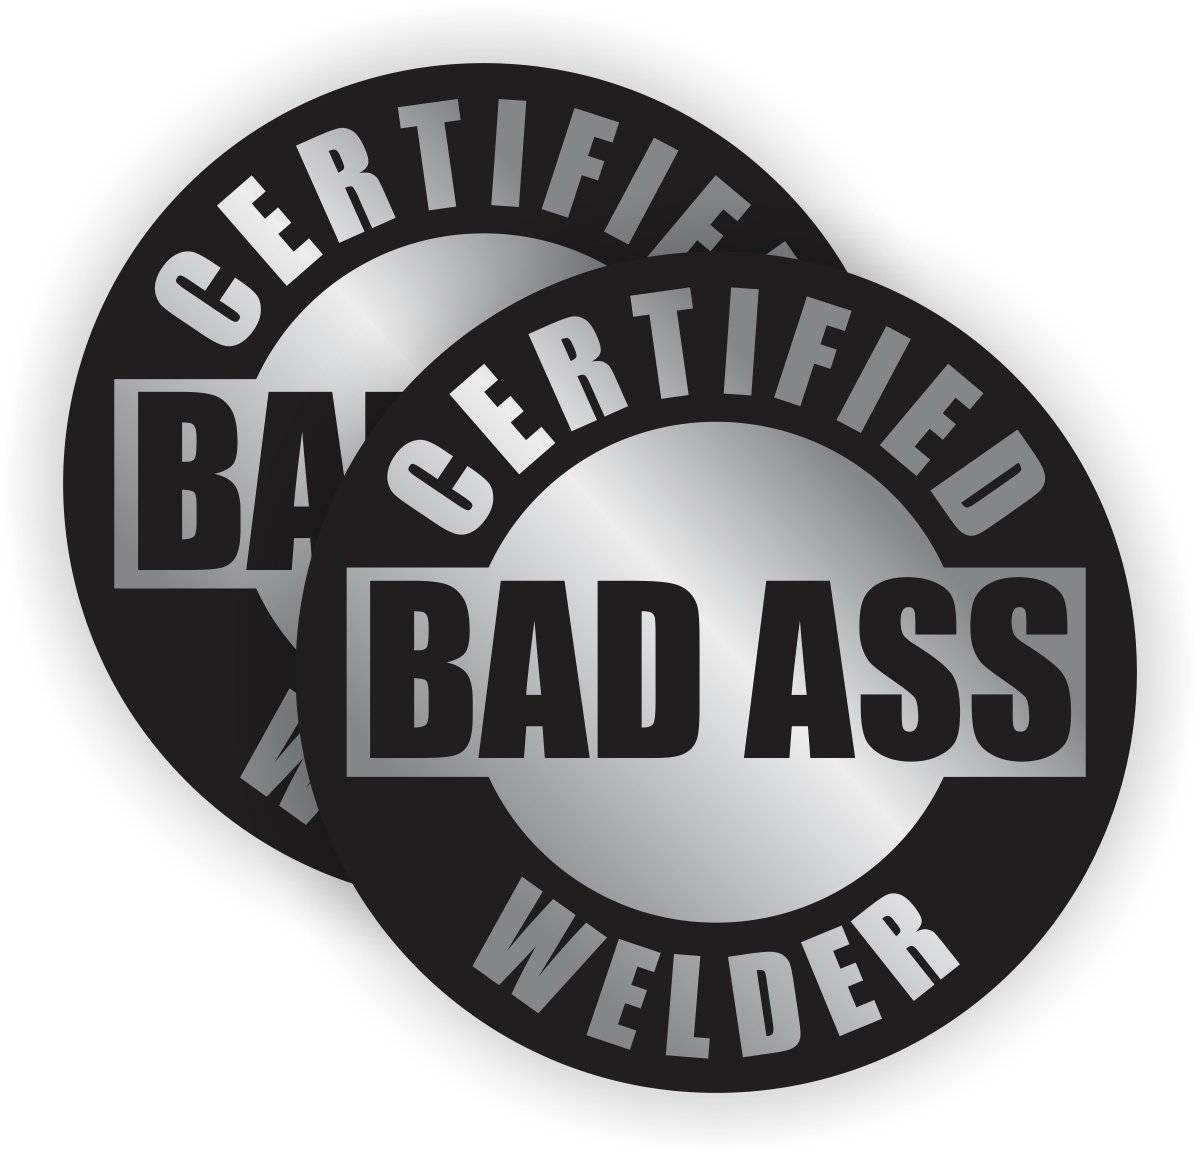 (Pair) Bad Ass Welder Hard Hat Stickers | Silver and Black Motorcycle Welding Helmet Decals | Labels Lunch Toolbox Mig Tig Metal Aluminum Stick